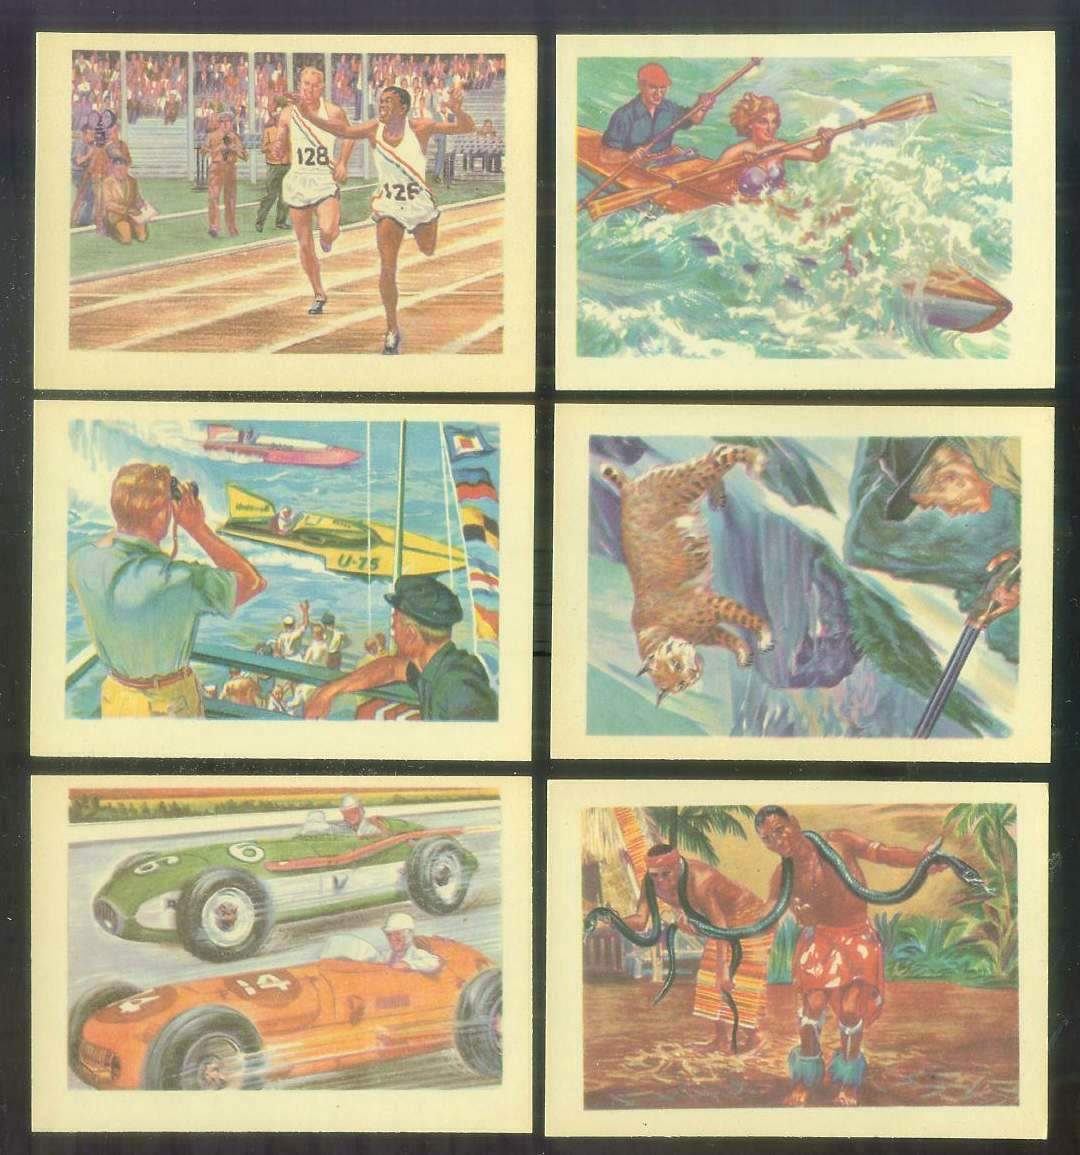 1956 GUM Inc. ADVENTURE #.12 'The Thousand Thrill Sport' Non-Sport cards value